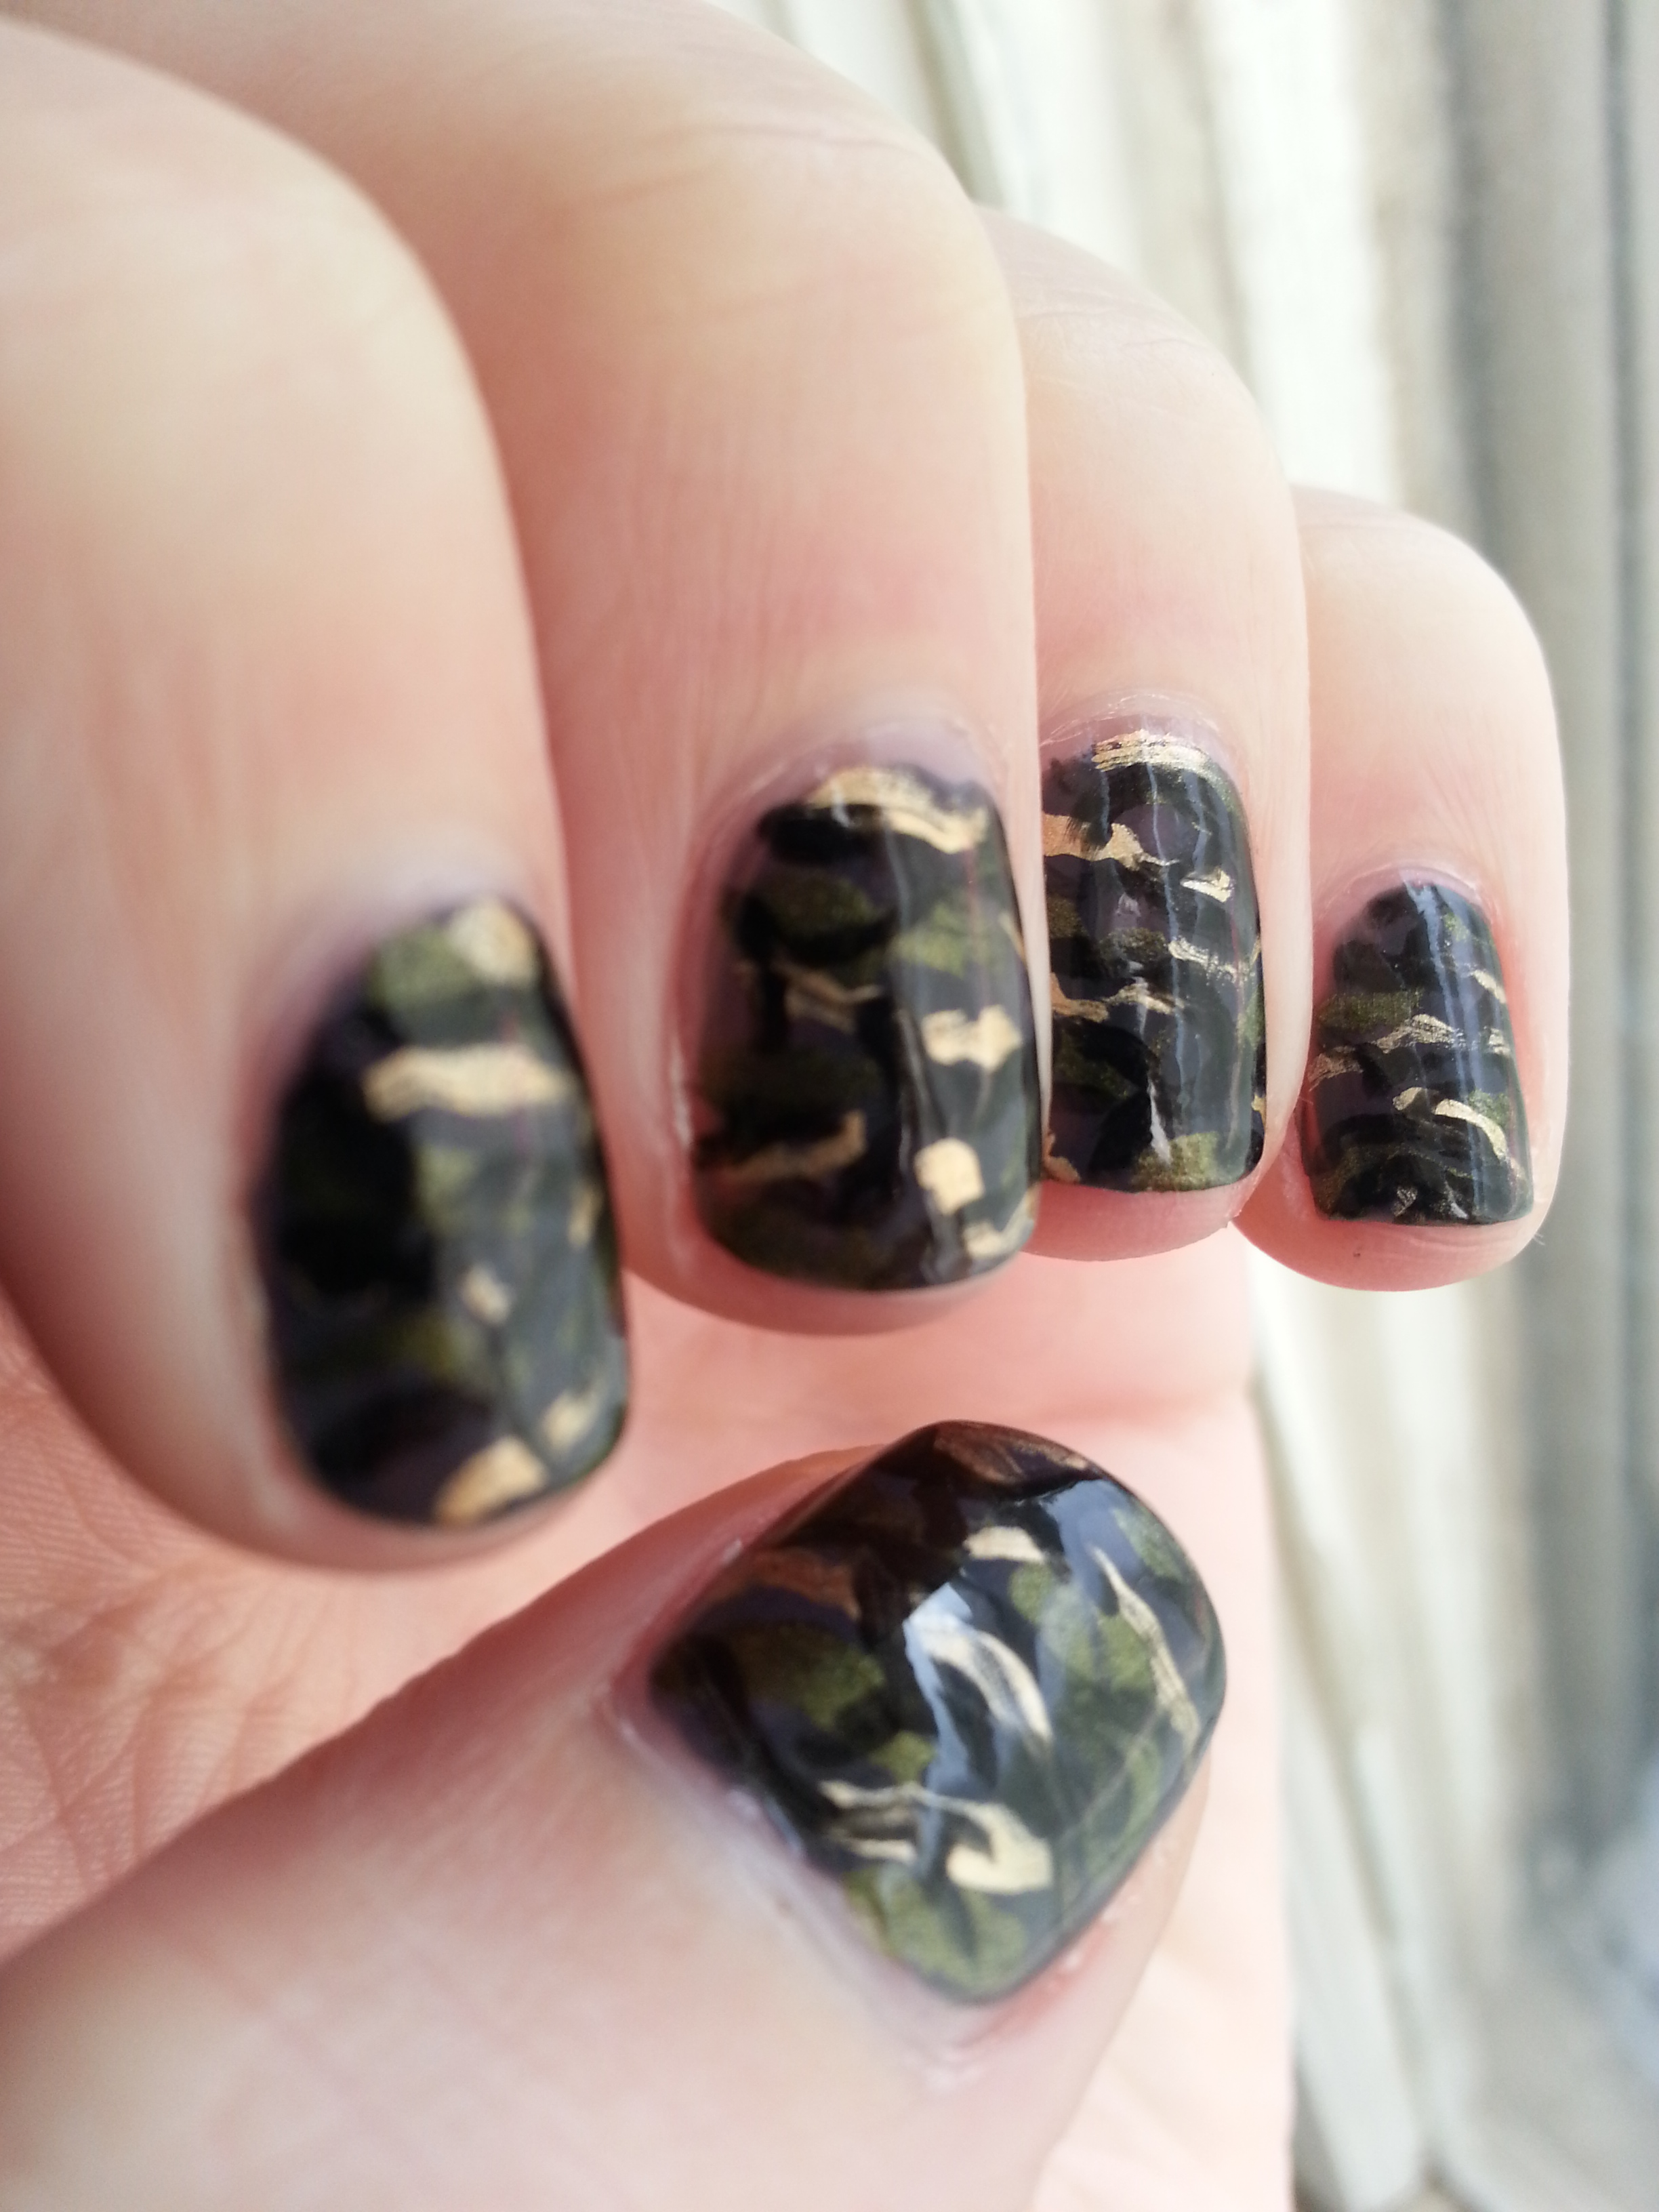 Camo nail designs pictures hey darling polish nail art a go day view images september nail art challenge camo prinsesfo Image collections